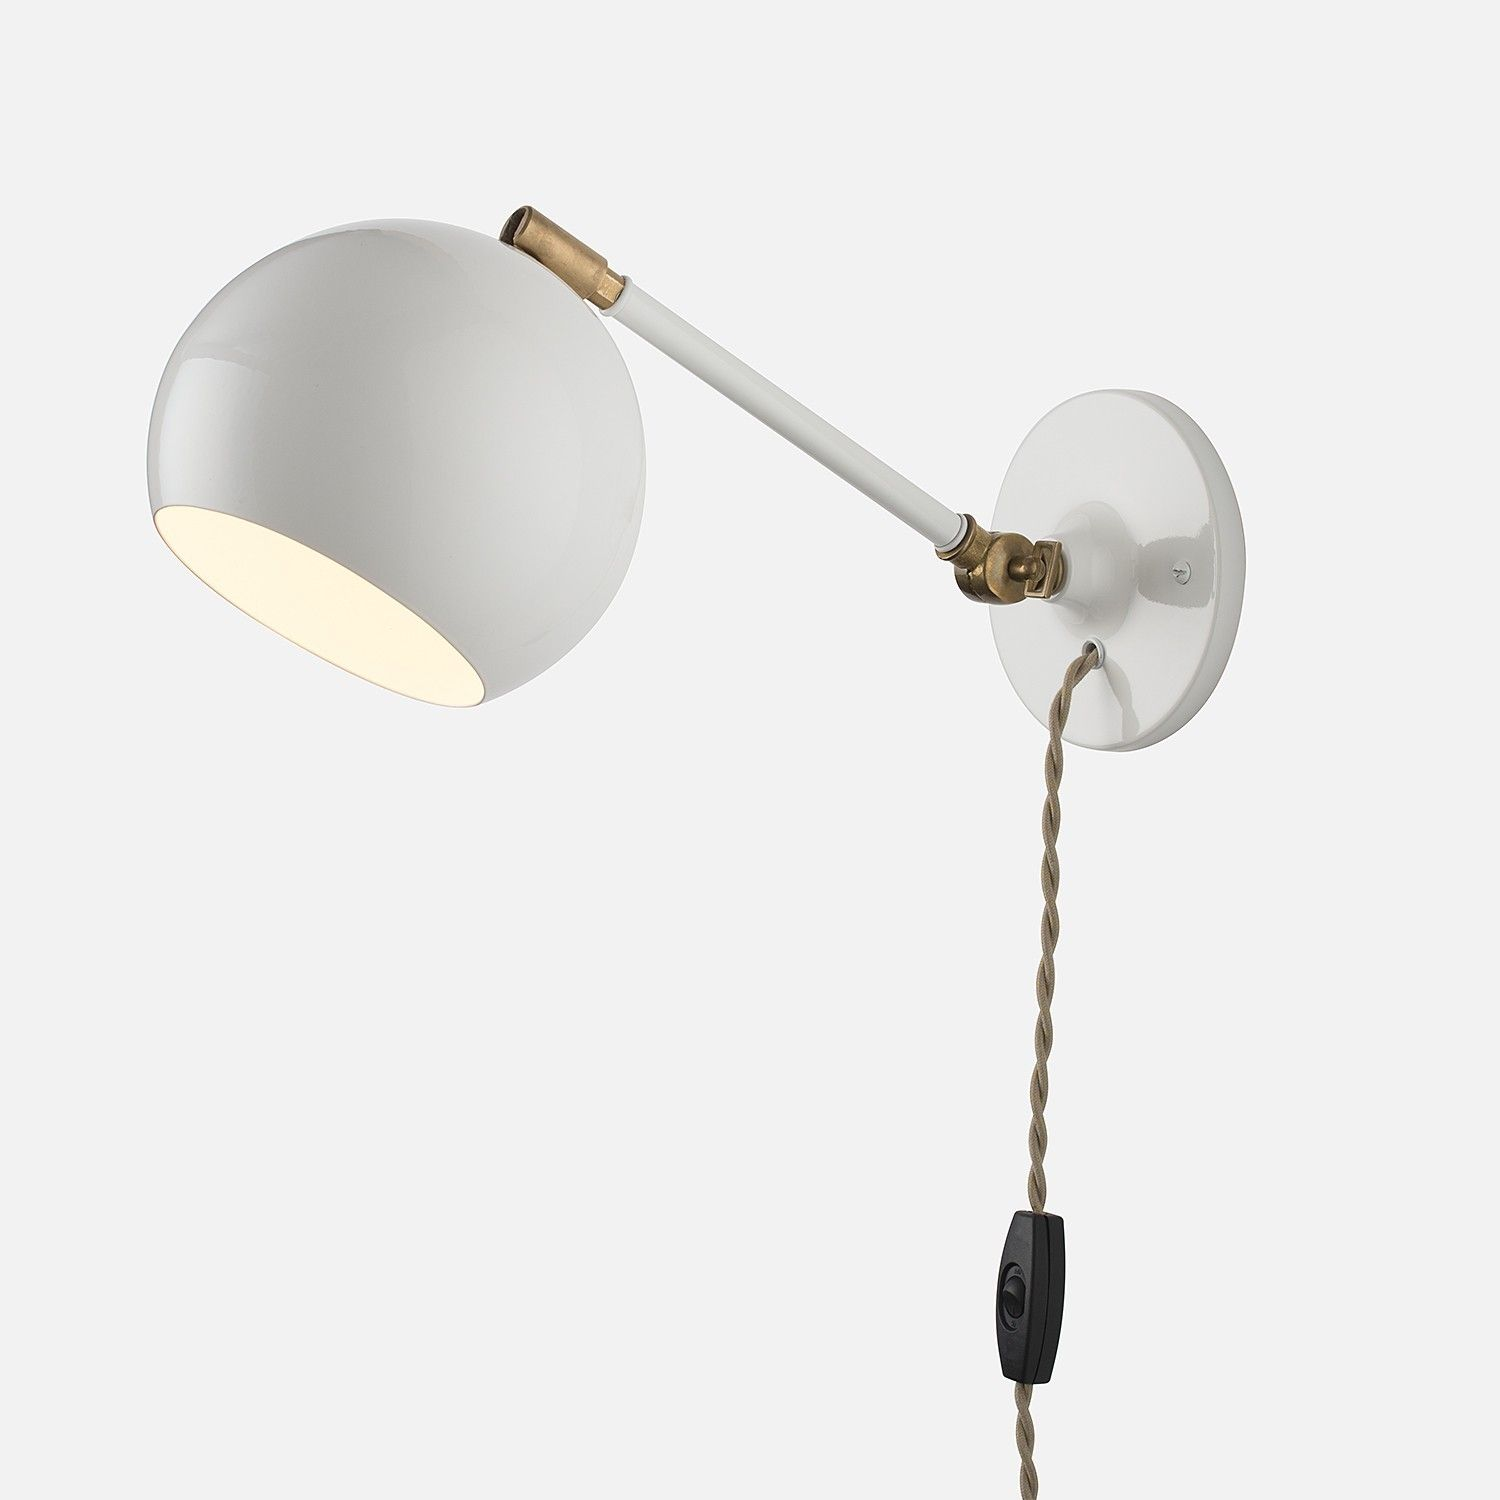 Isaac Plug In Sconce Long Arm Sconces School House Lighting Light Fixtures